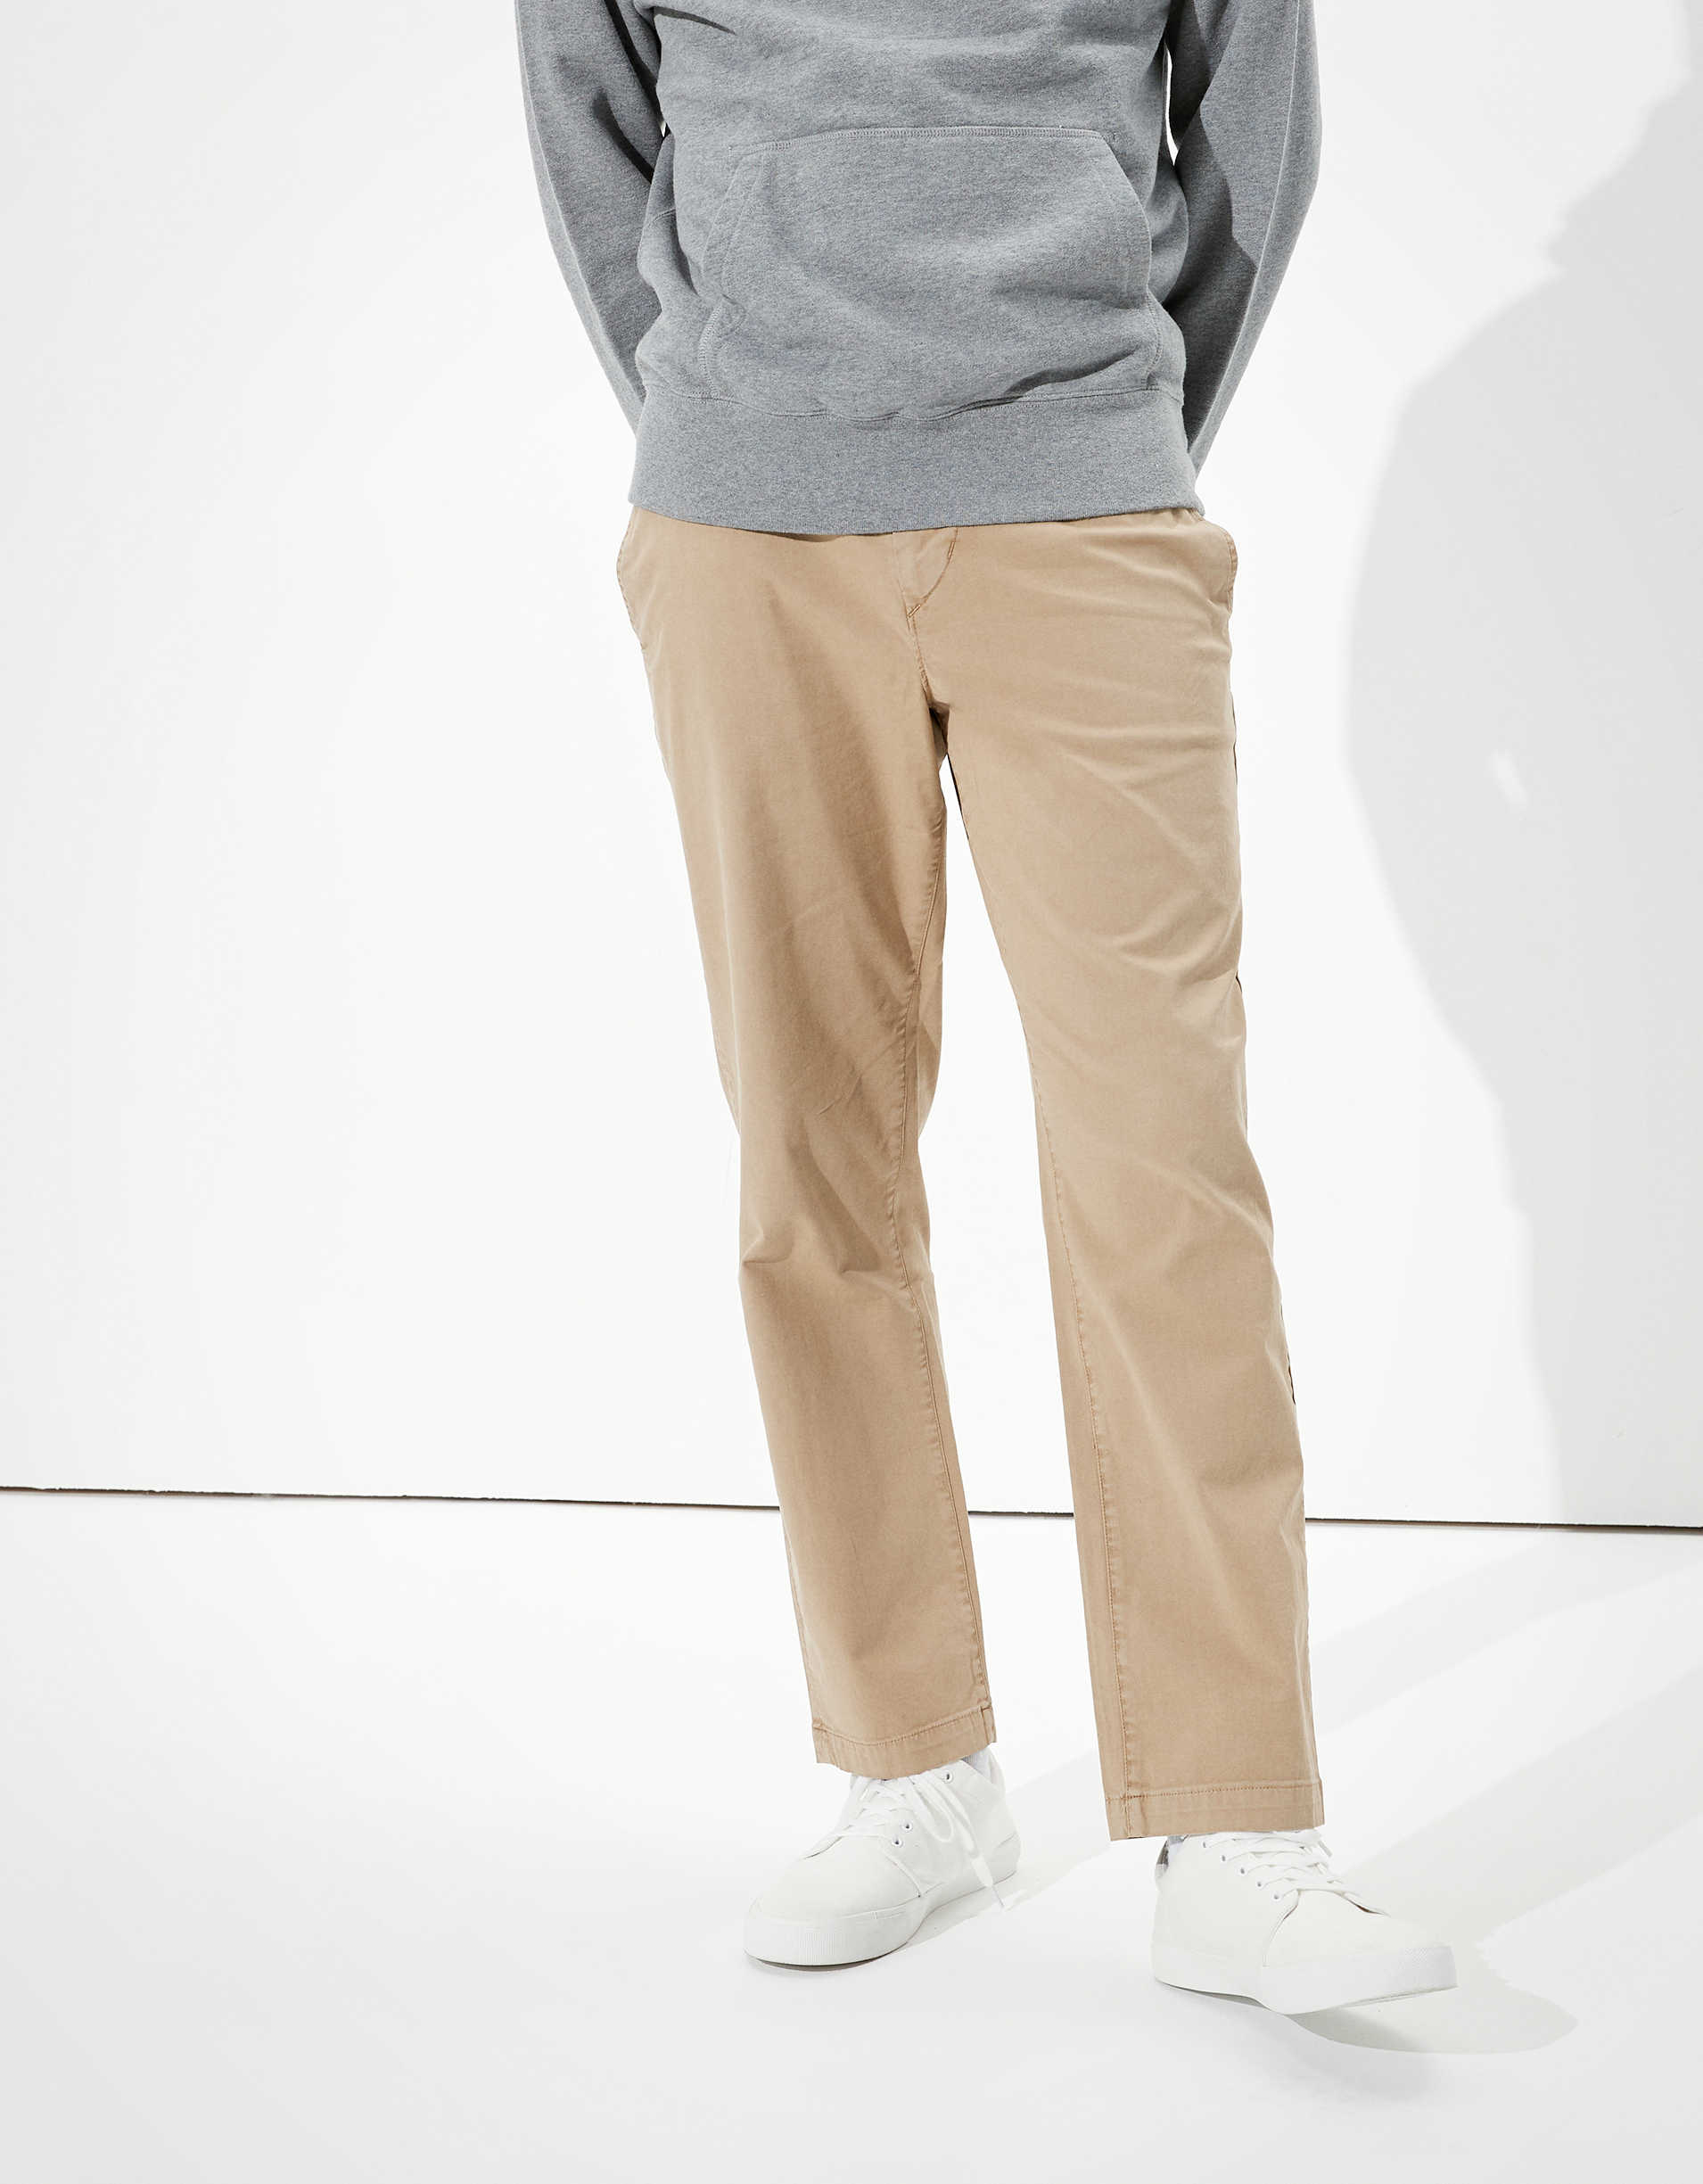 AE Flex Original Straight Chino